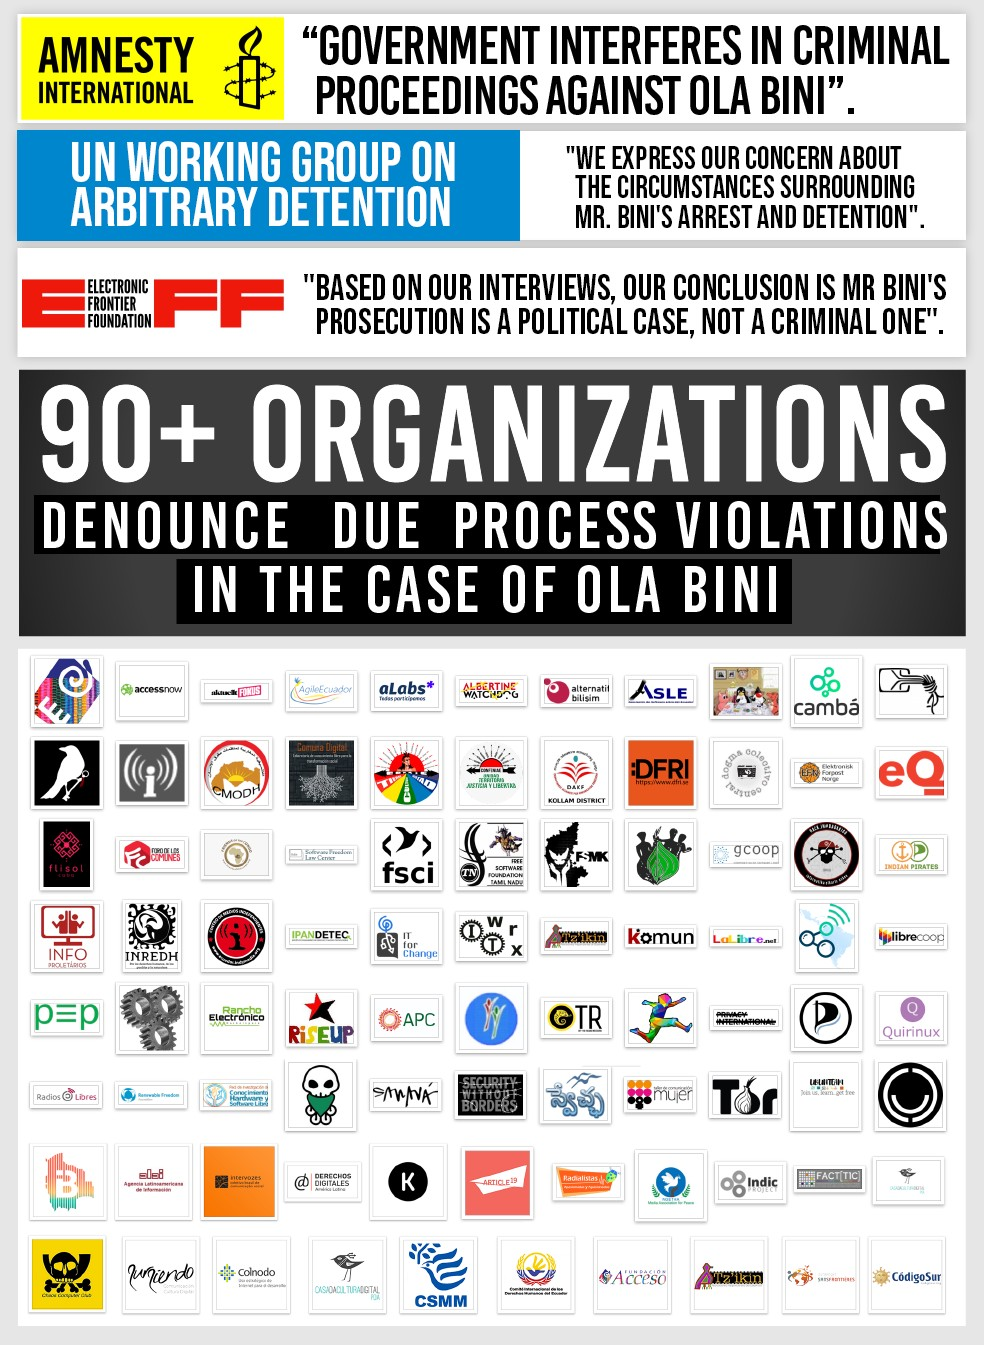 A list of 90 organizations opposing the prosecution of Ola Bini